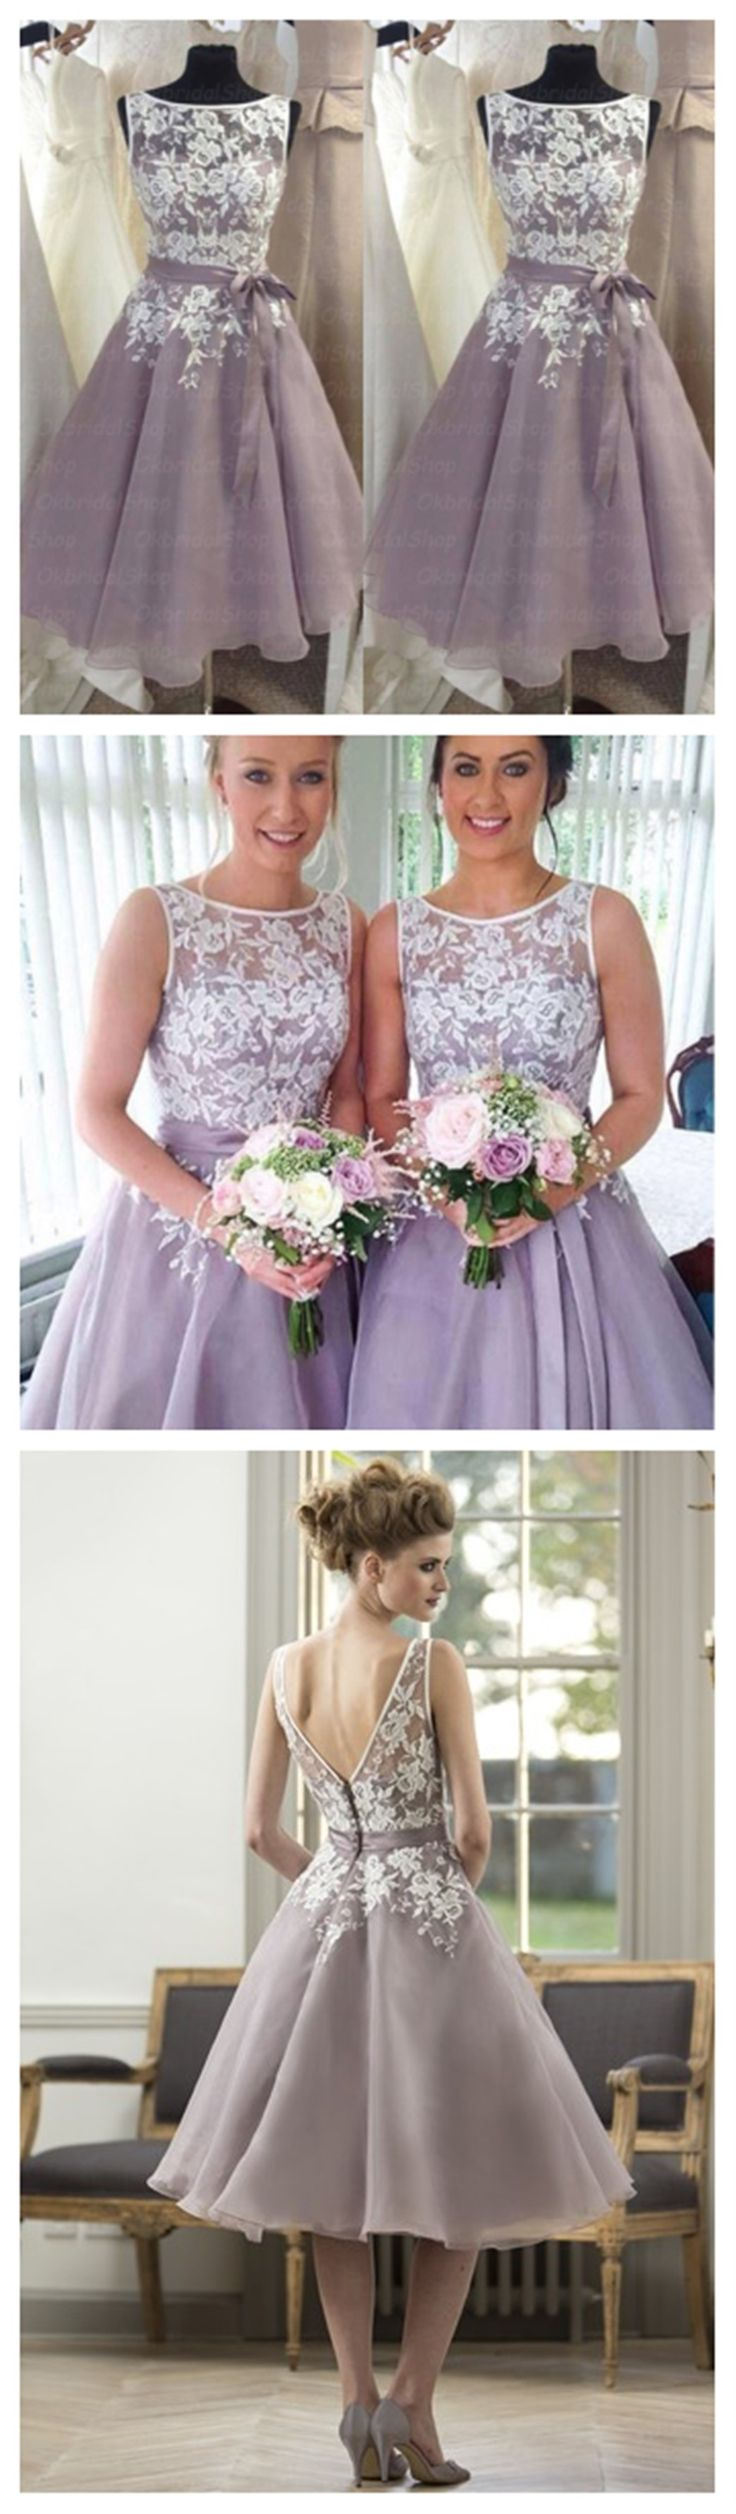 lace bridesmaid dresses, short bridesmaid dresses, off shoulder bridesmaid dresses, organza bridesmaid dresses, unique bridesmaid dresses, 16406 #wedding #bridesmaids #bridesmaiddresses #sequinbridesmaiddresses #longbridesmaiddresses #cheapbridesmaiddresses #dresses